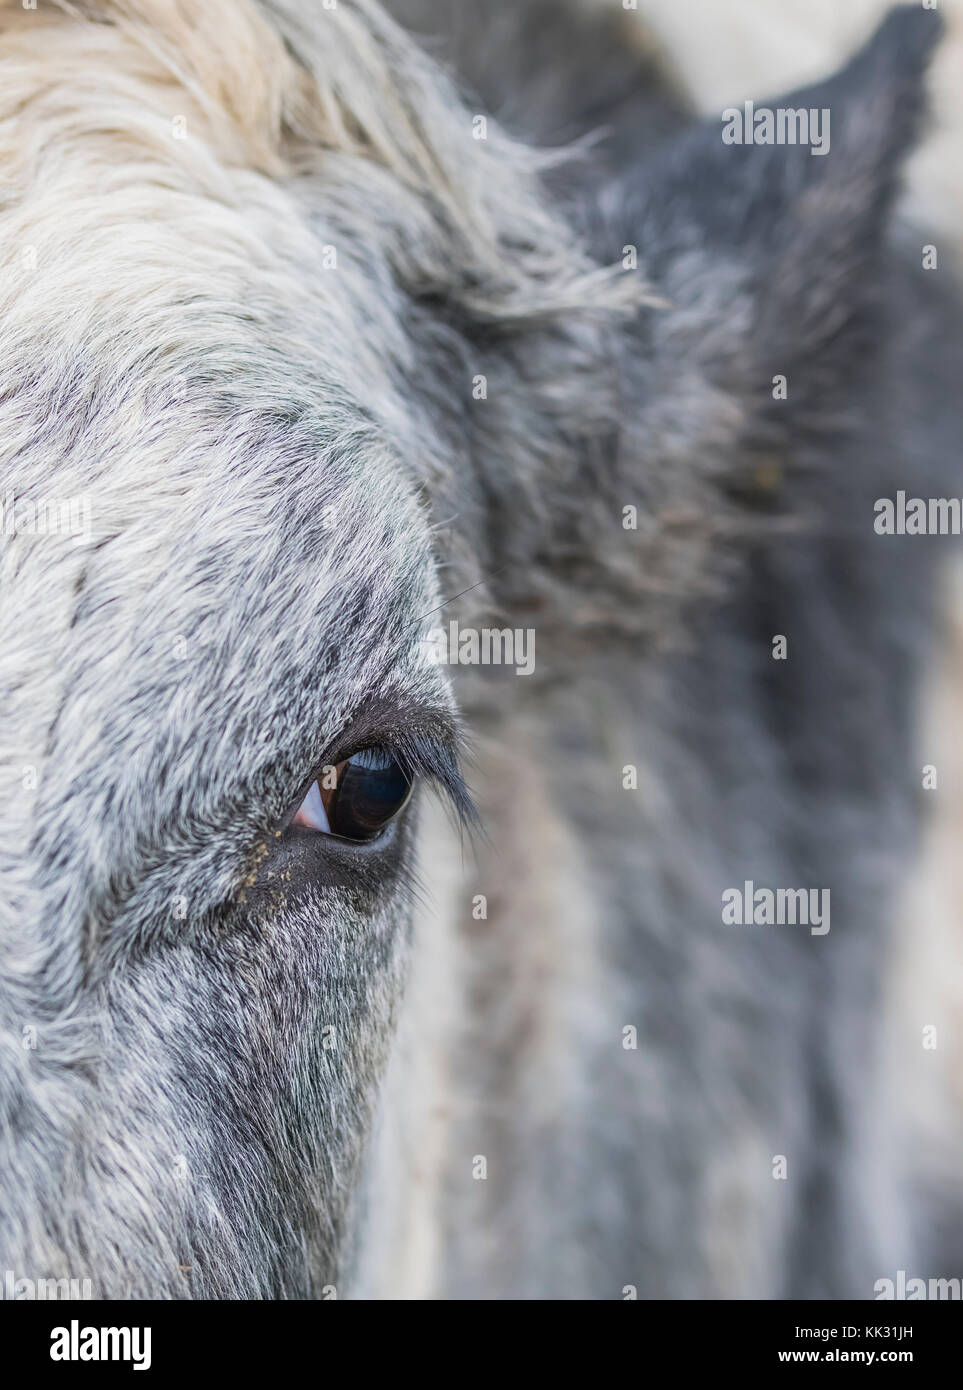 Closeup of a cow's eye in portrait view. - Stock Image